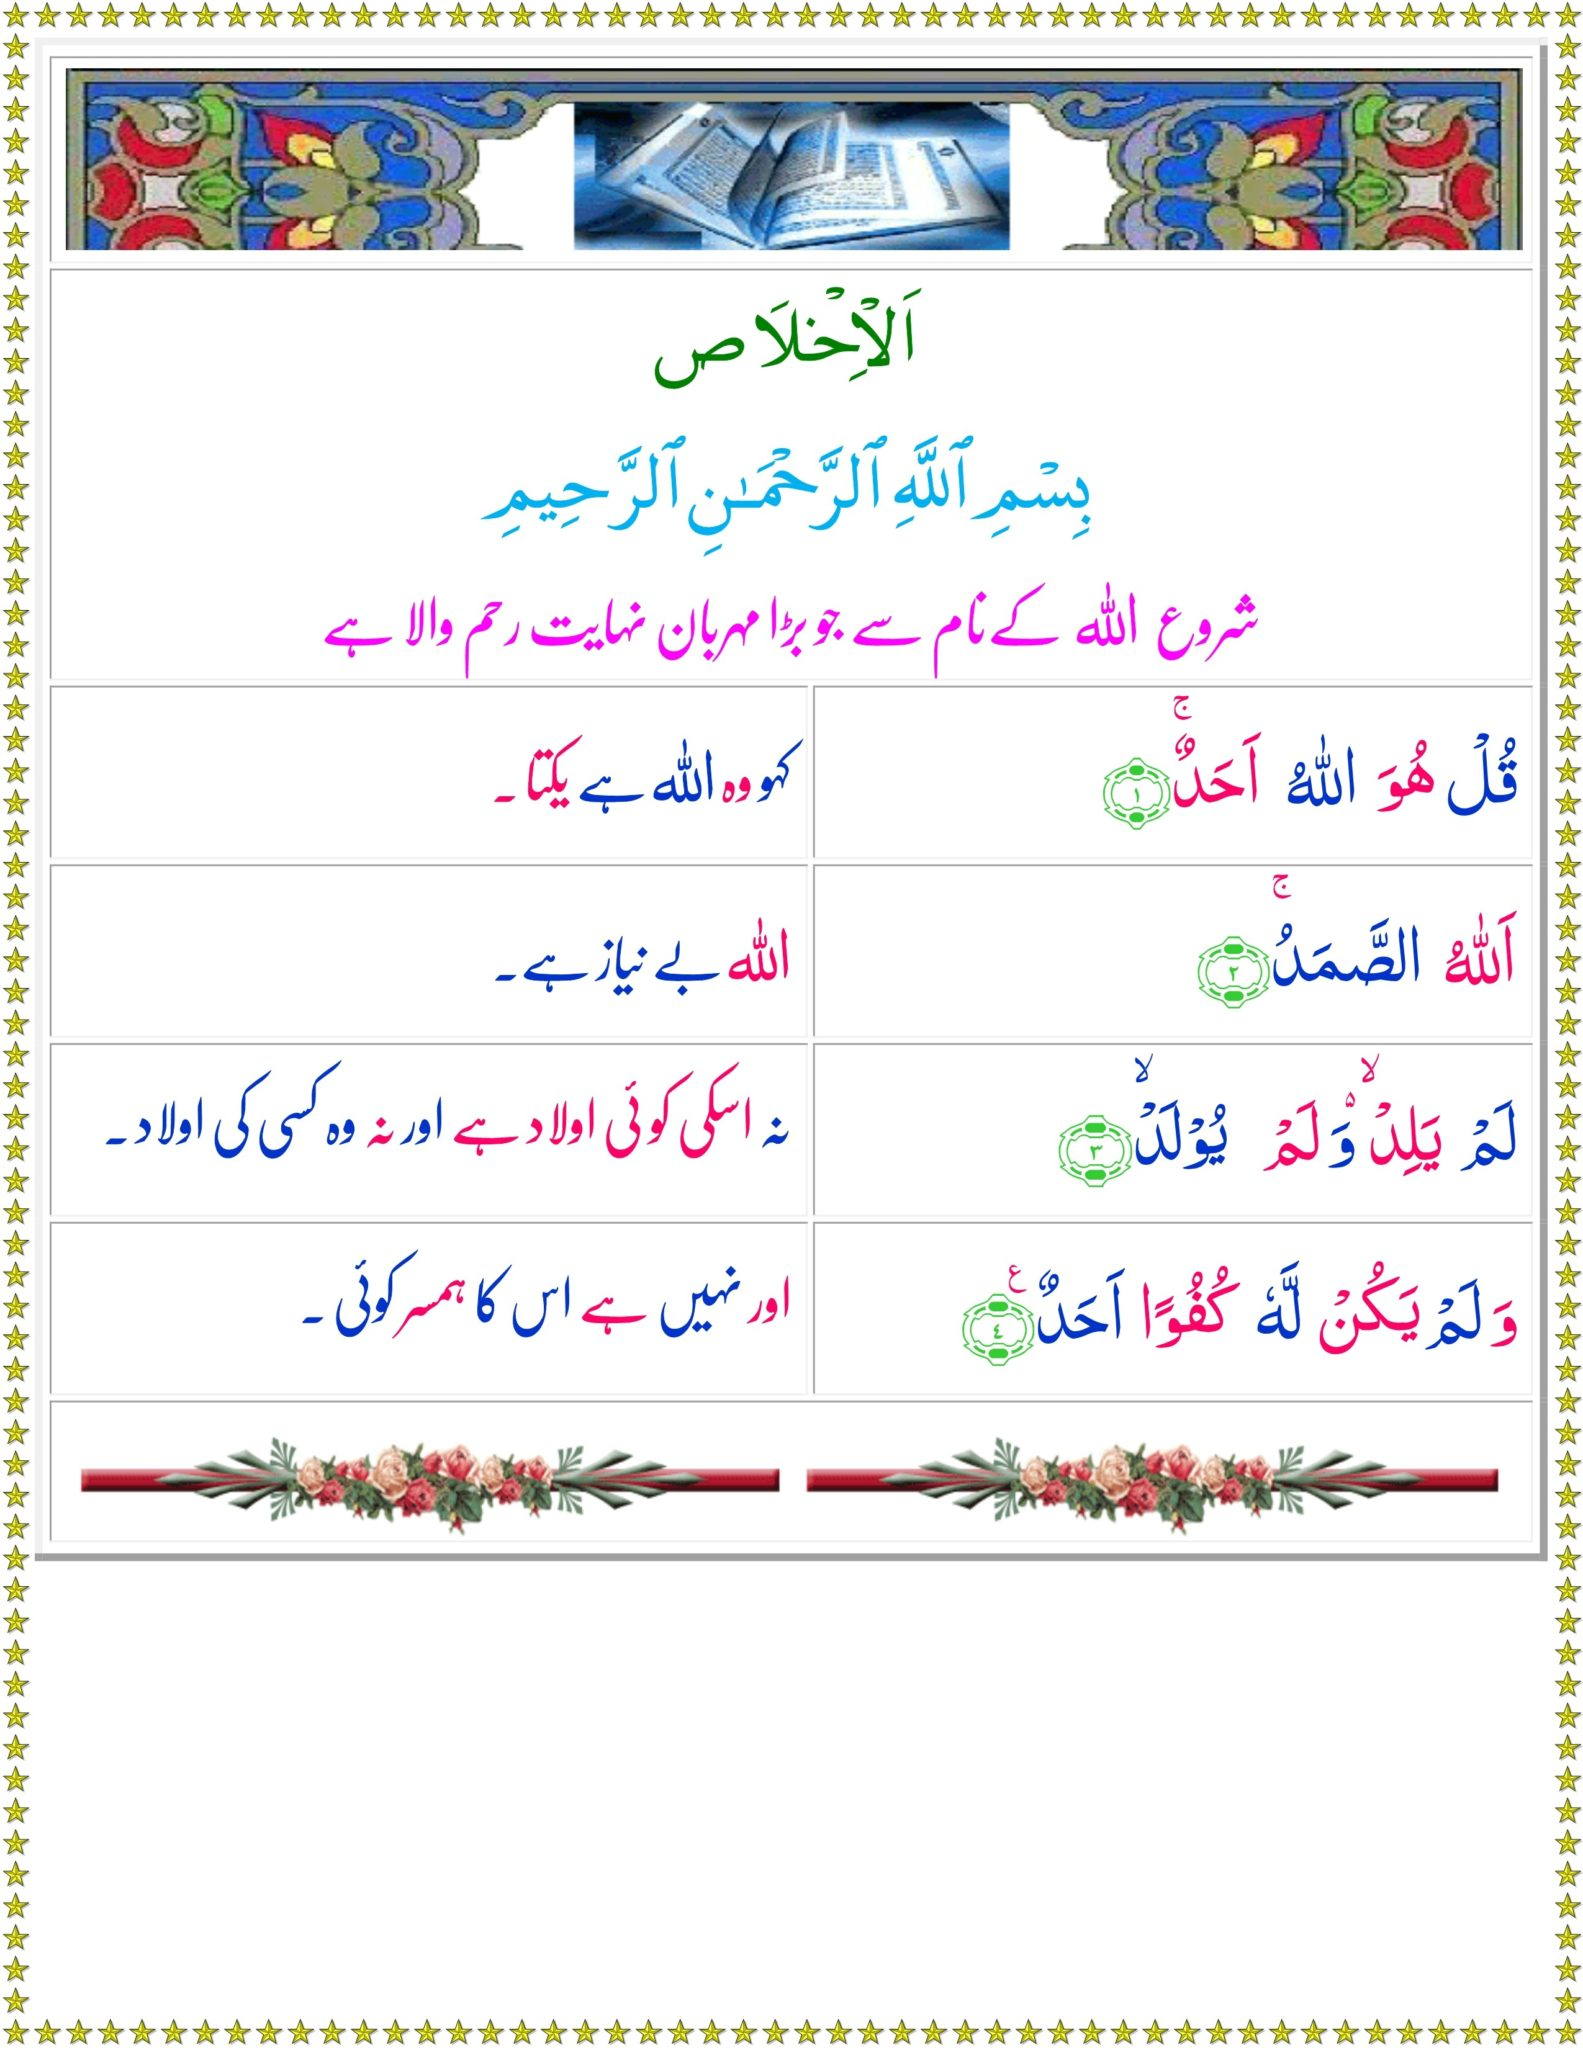 Surah Ikhlas translation in Urdu, Hindi